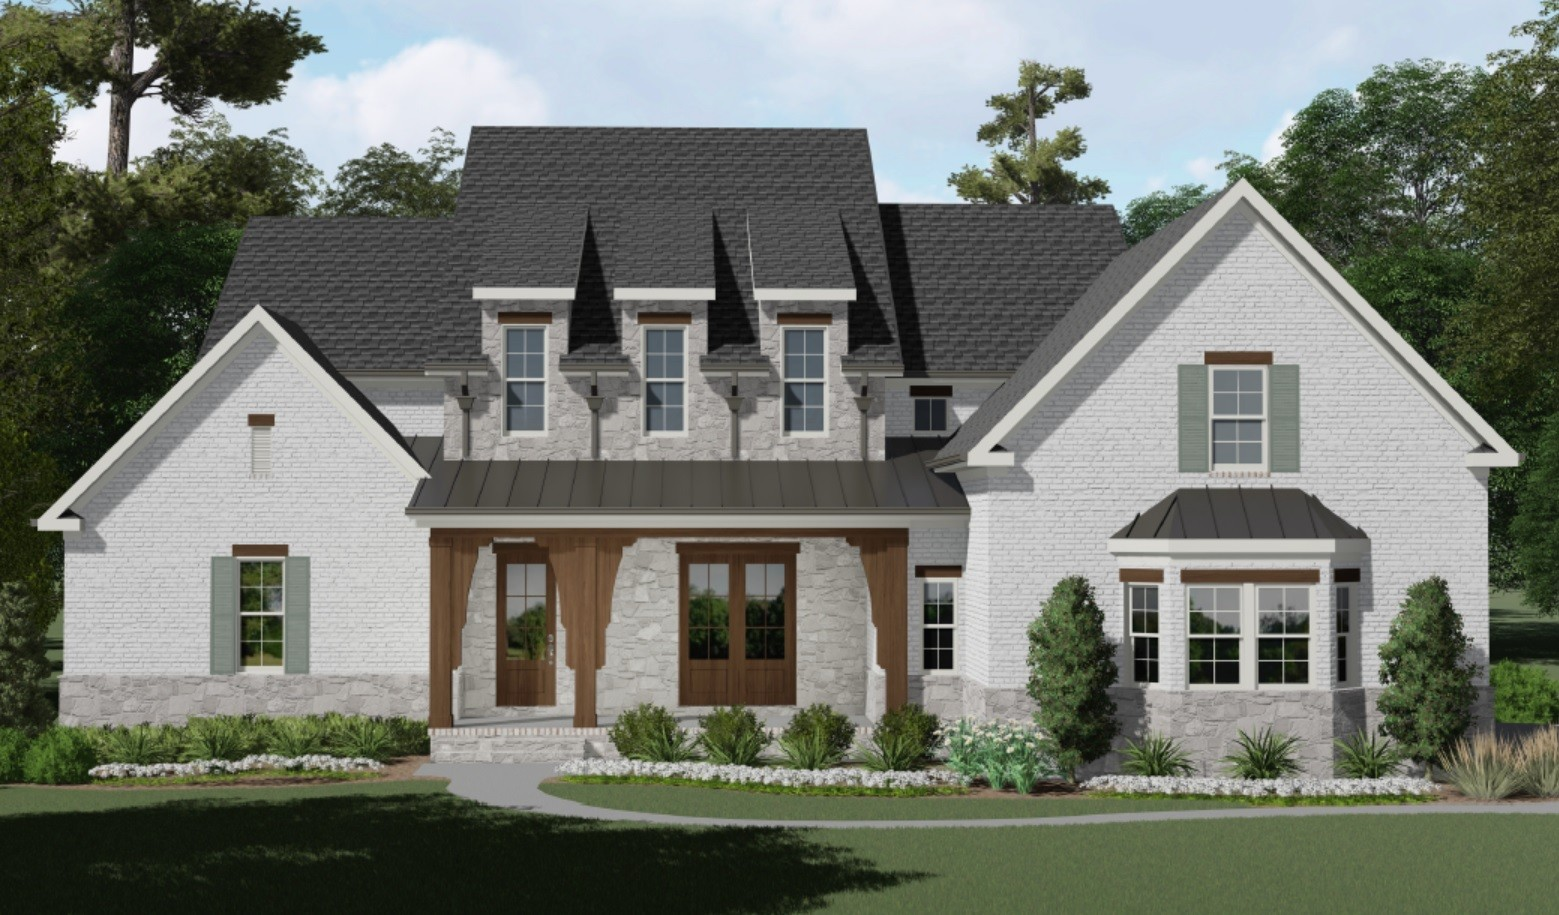 """Quality construction from AR Homes in new development-Hardeman Springs! Chef's kitchen w/66"""" built-in refrigerator, massive 10' island & hidden pantry, fantastic utility room w/center island, dual stairwells, private tiered media on main, entertaining bar, large bedrooms w/walk-in-closets, storage access & more. Private homesite backs to mature trees.  Builder can customize any home to suit Buyer's needs! Community pool coming Summer 2020! GPS: Use 4991 Murfreesboro Rd, Arrington, TN"""